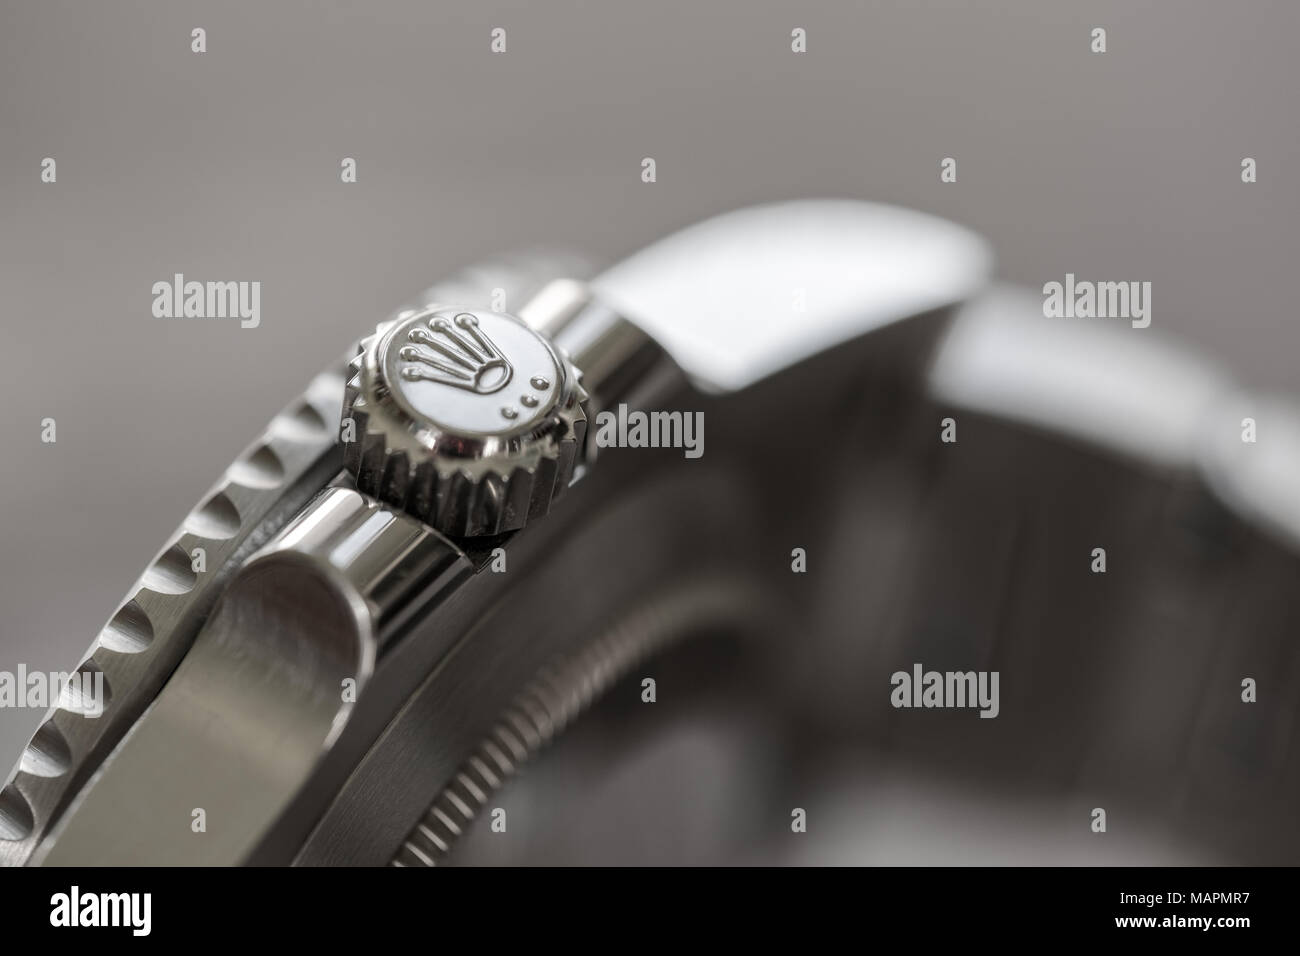 Swiss Watches Stock Photos Amp Swiss Watches Stock Images